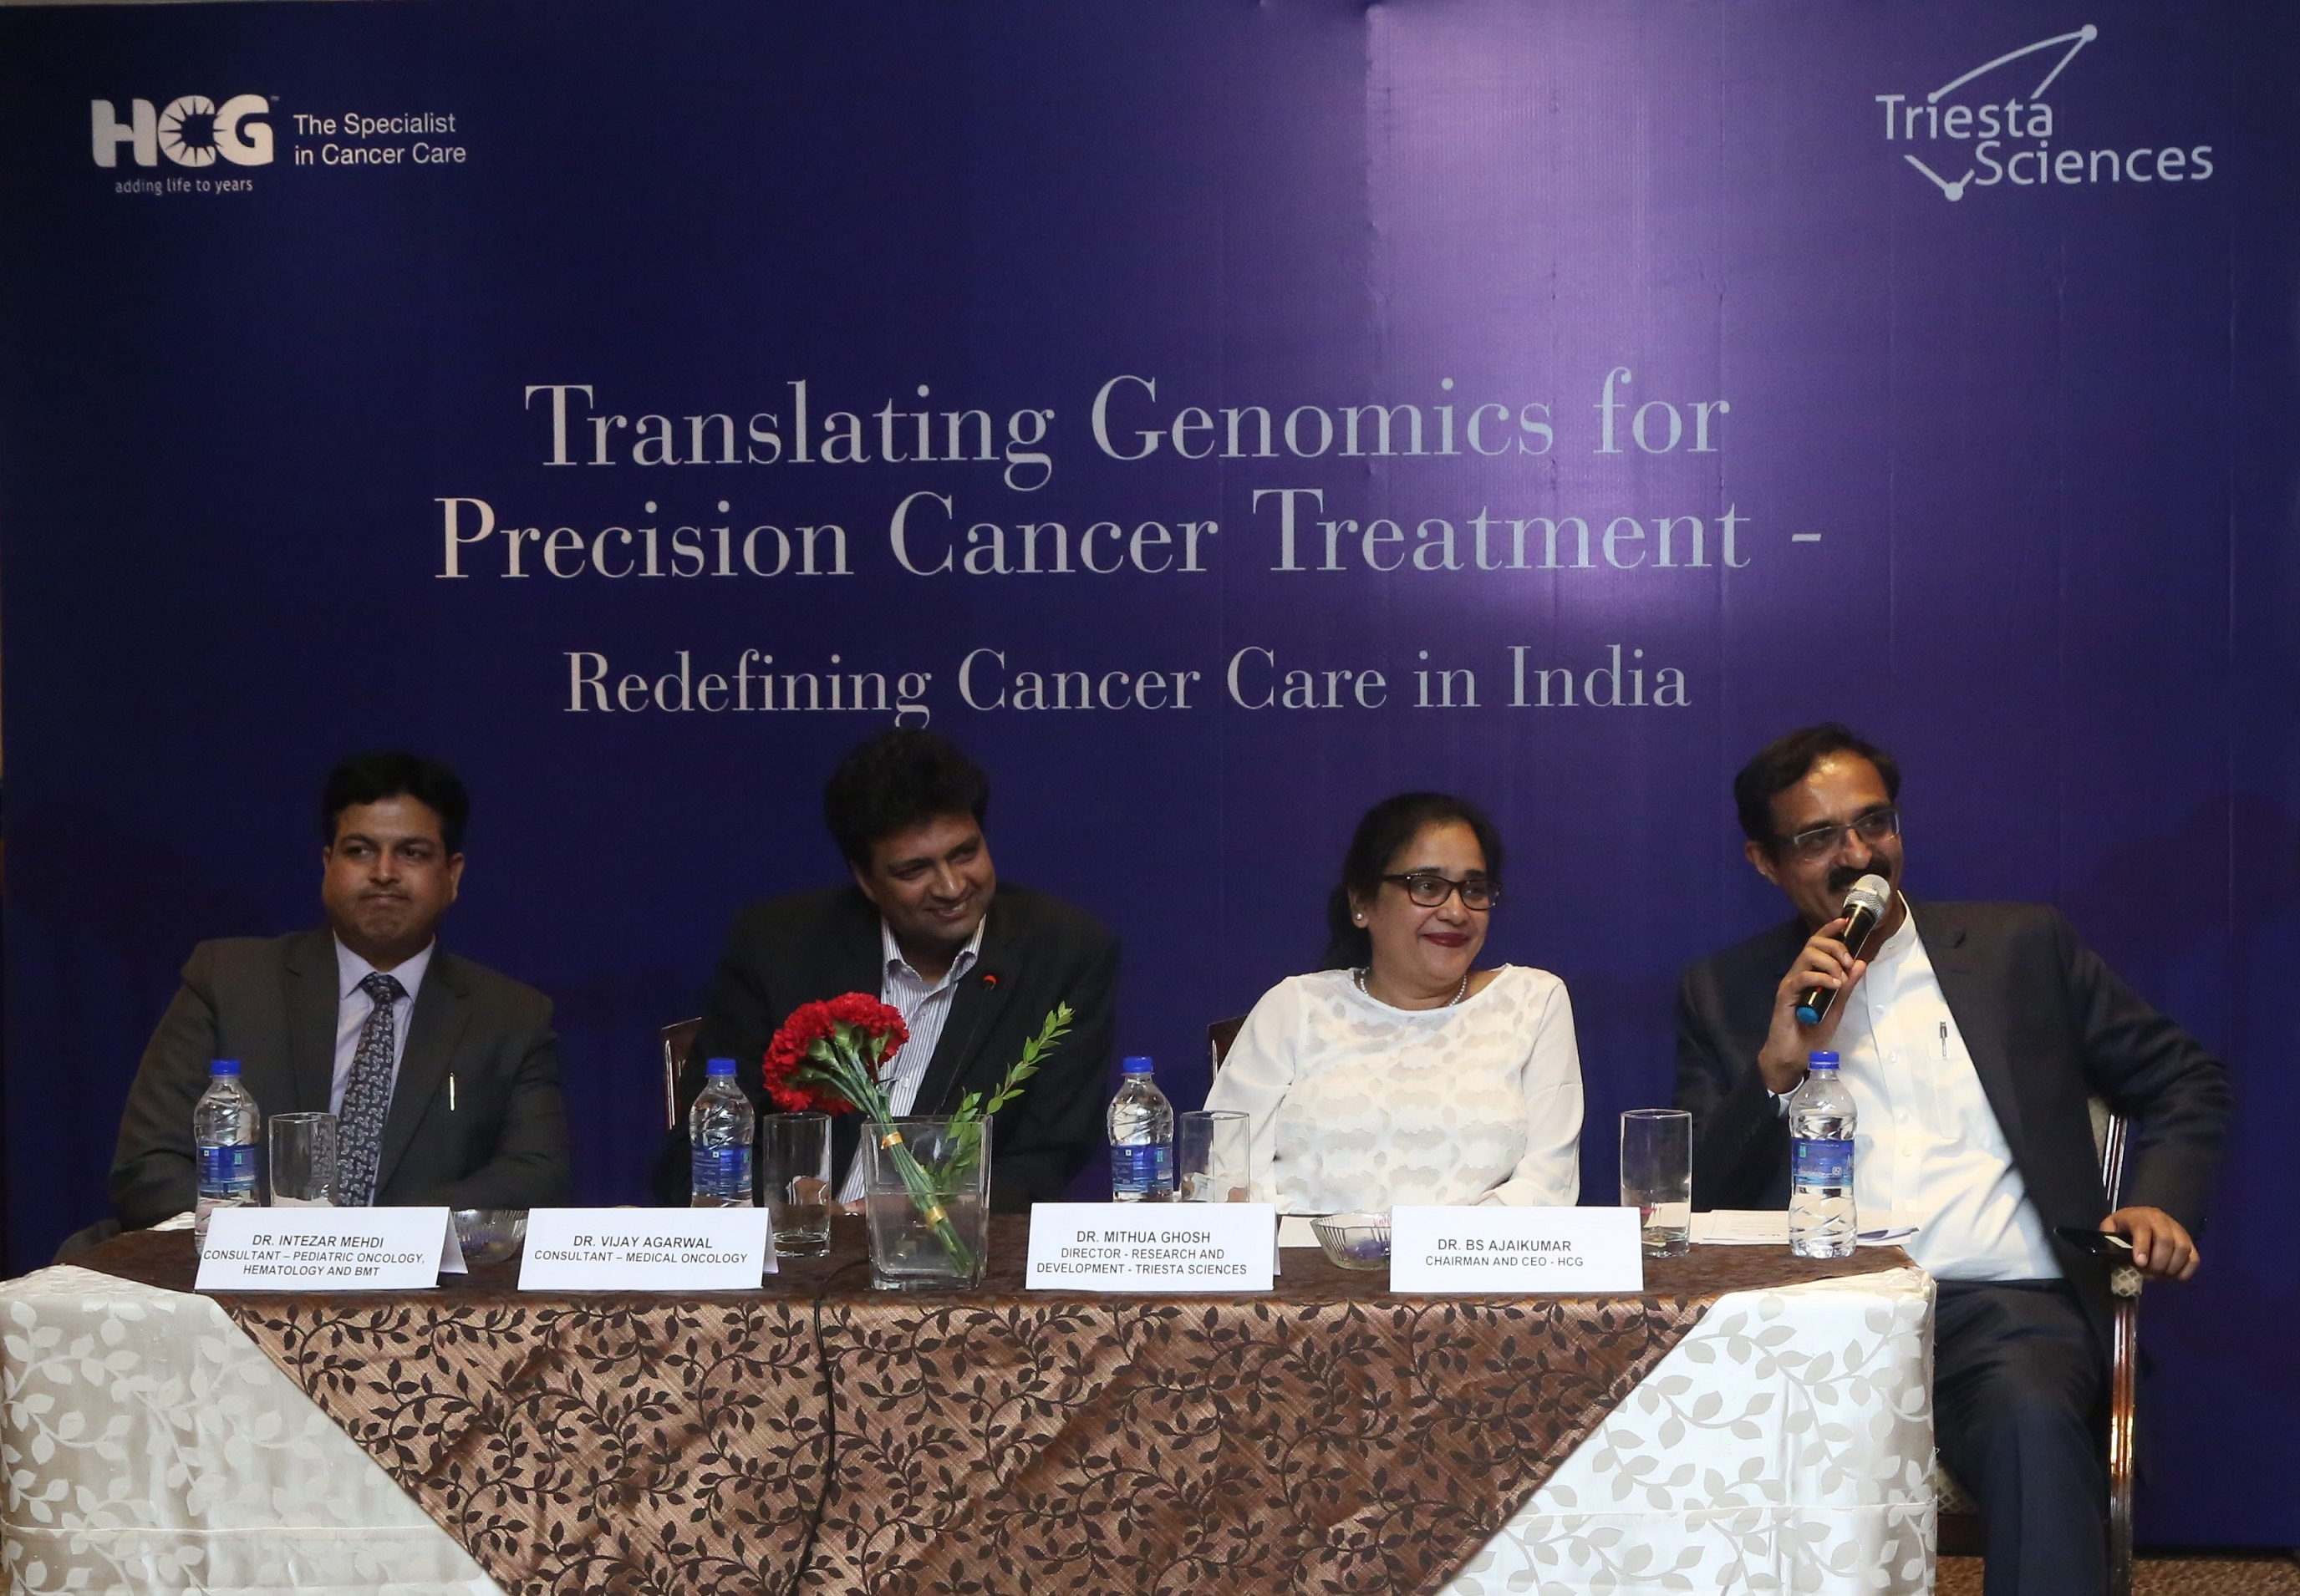 HCG launches Triesta Genomics and Translational Research Center